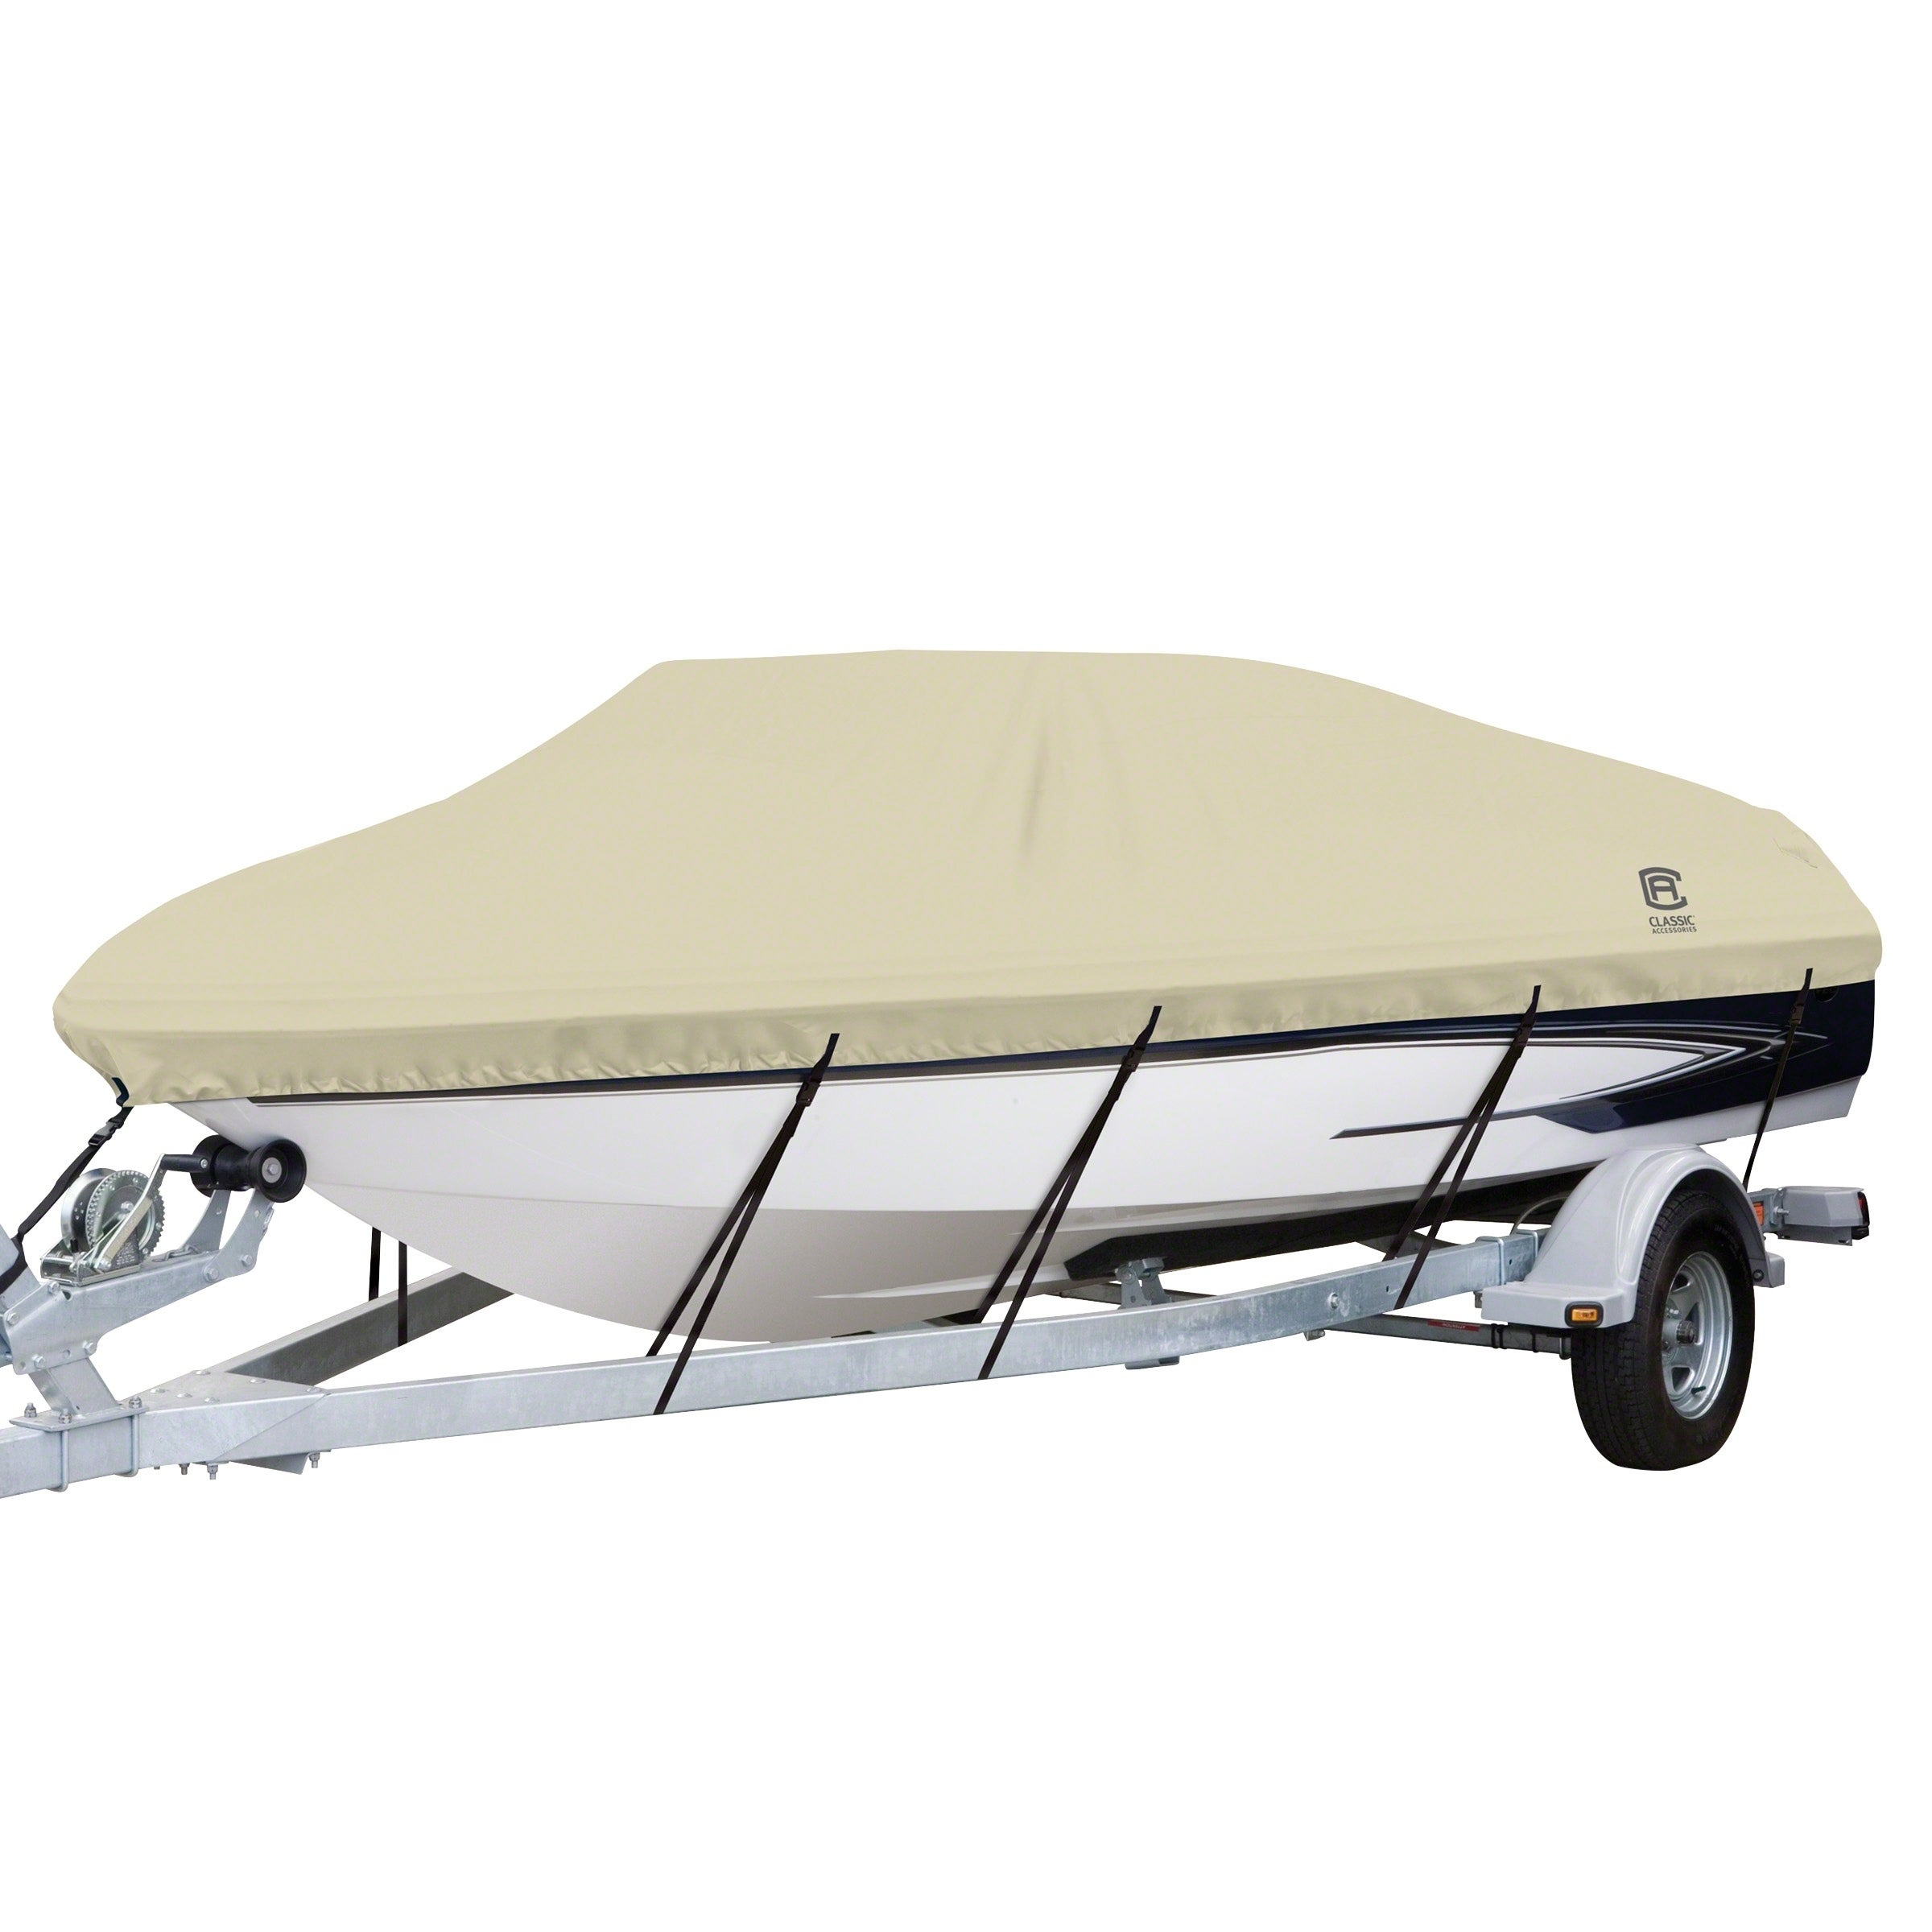 Shop Classic Accessories 20 088 132401 00 Dryguard Boat Cover 22